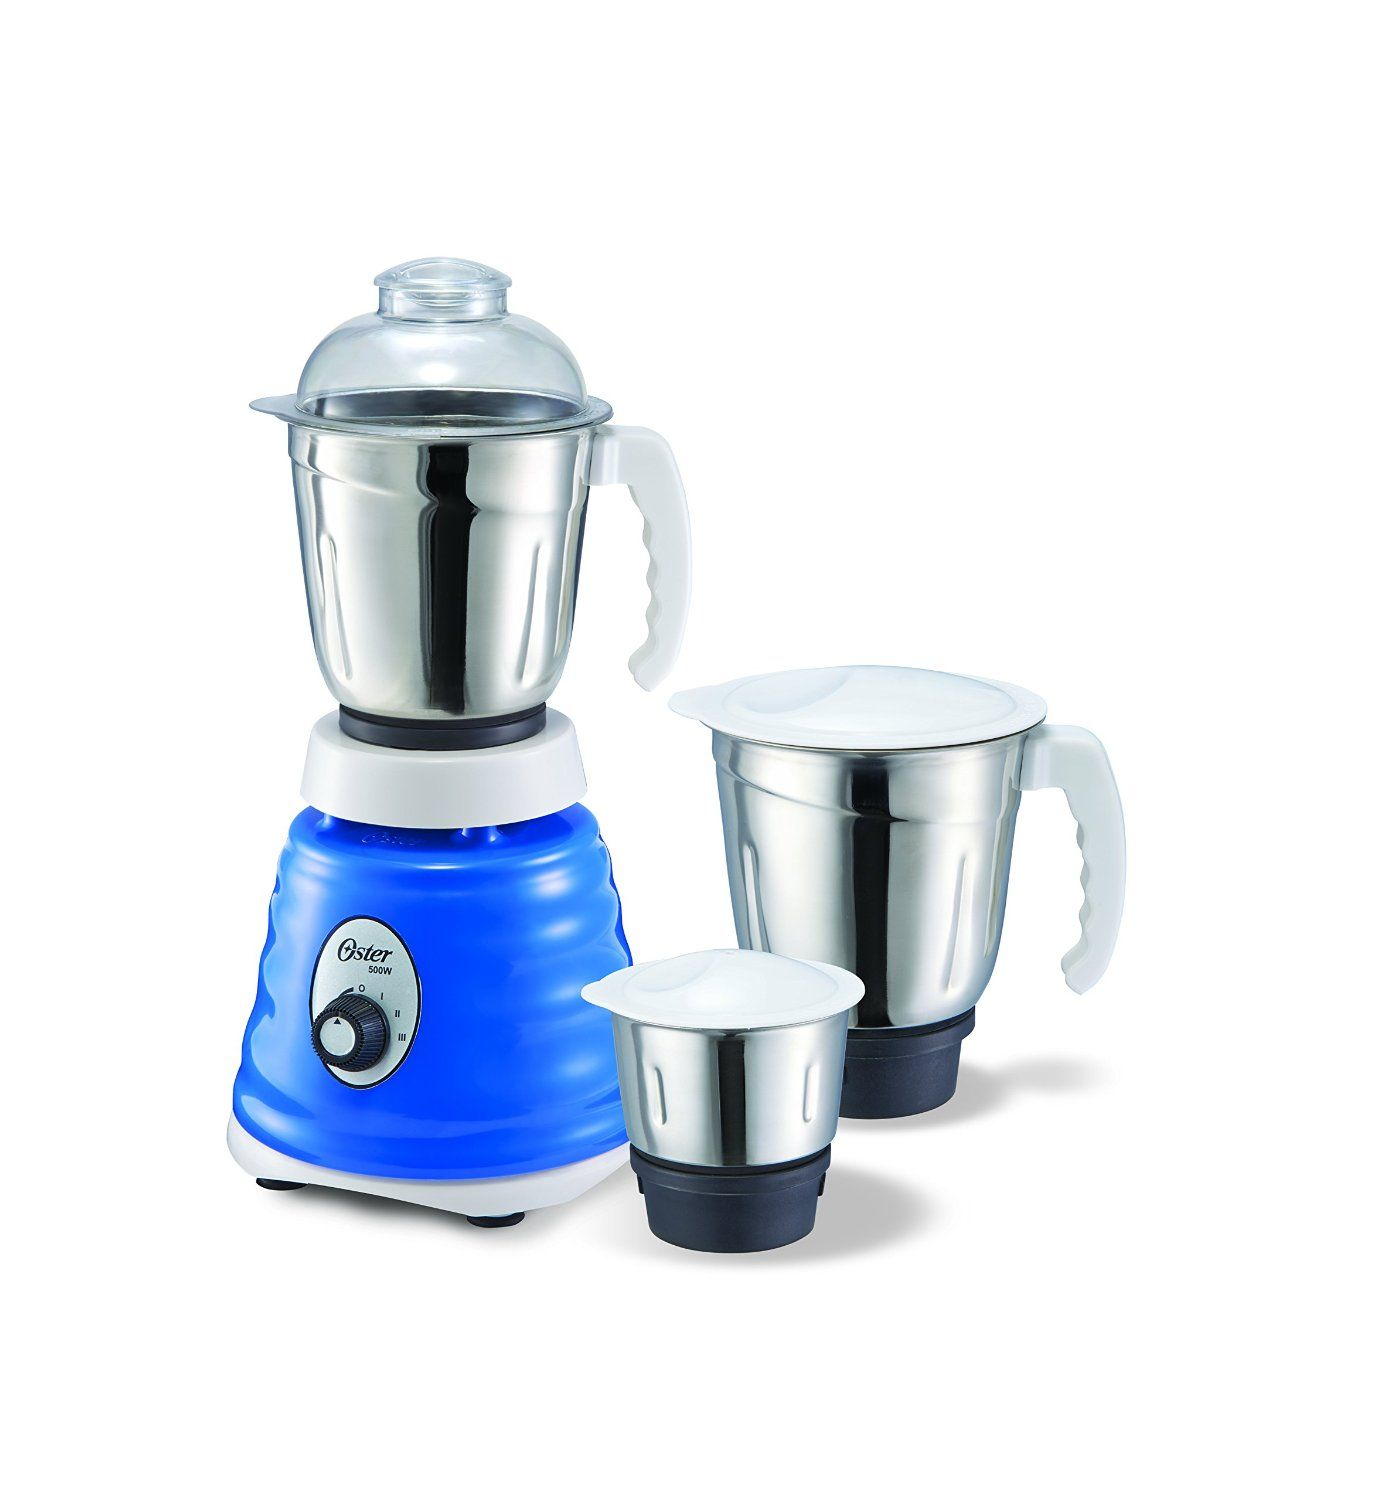 Uncategorized Oster Mixers Small Kitchen Appliances oster 8010 500 watt 3 speed beehive mixer grinder lowest price 1613 only best kitchen and home appliances